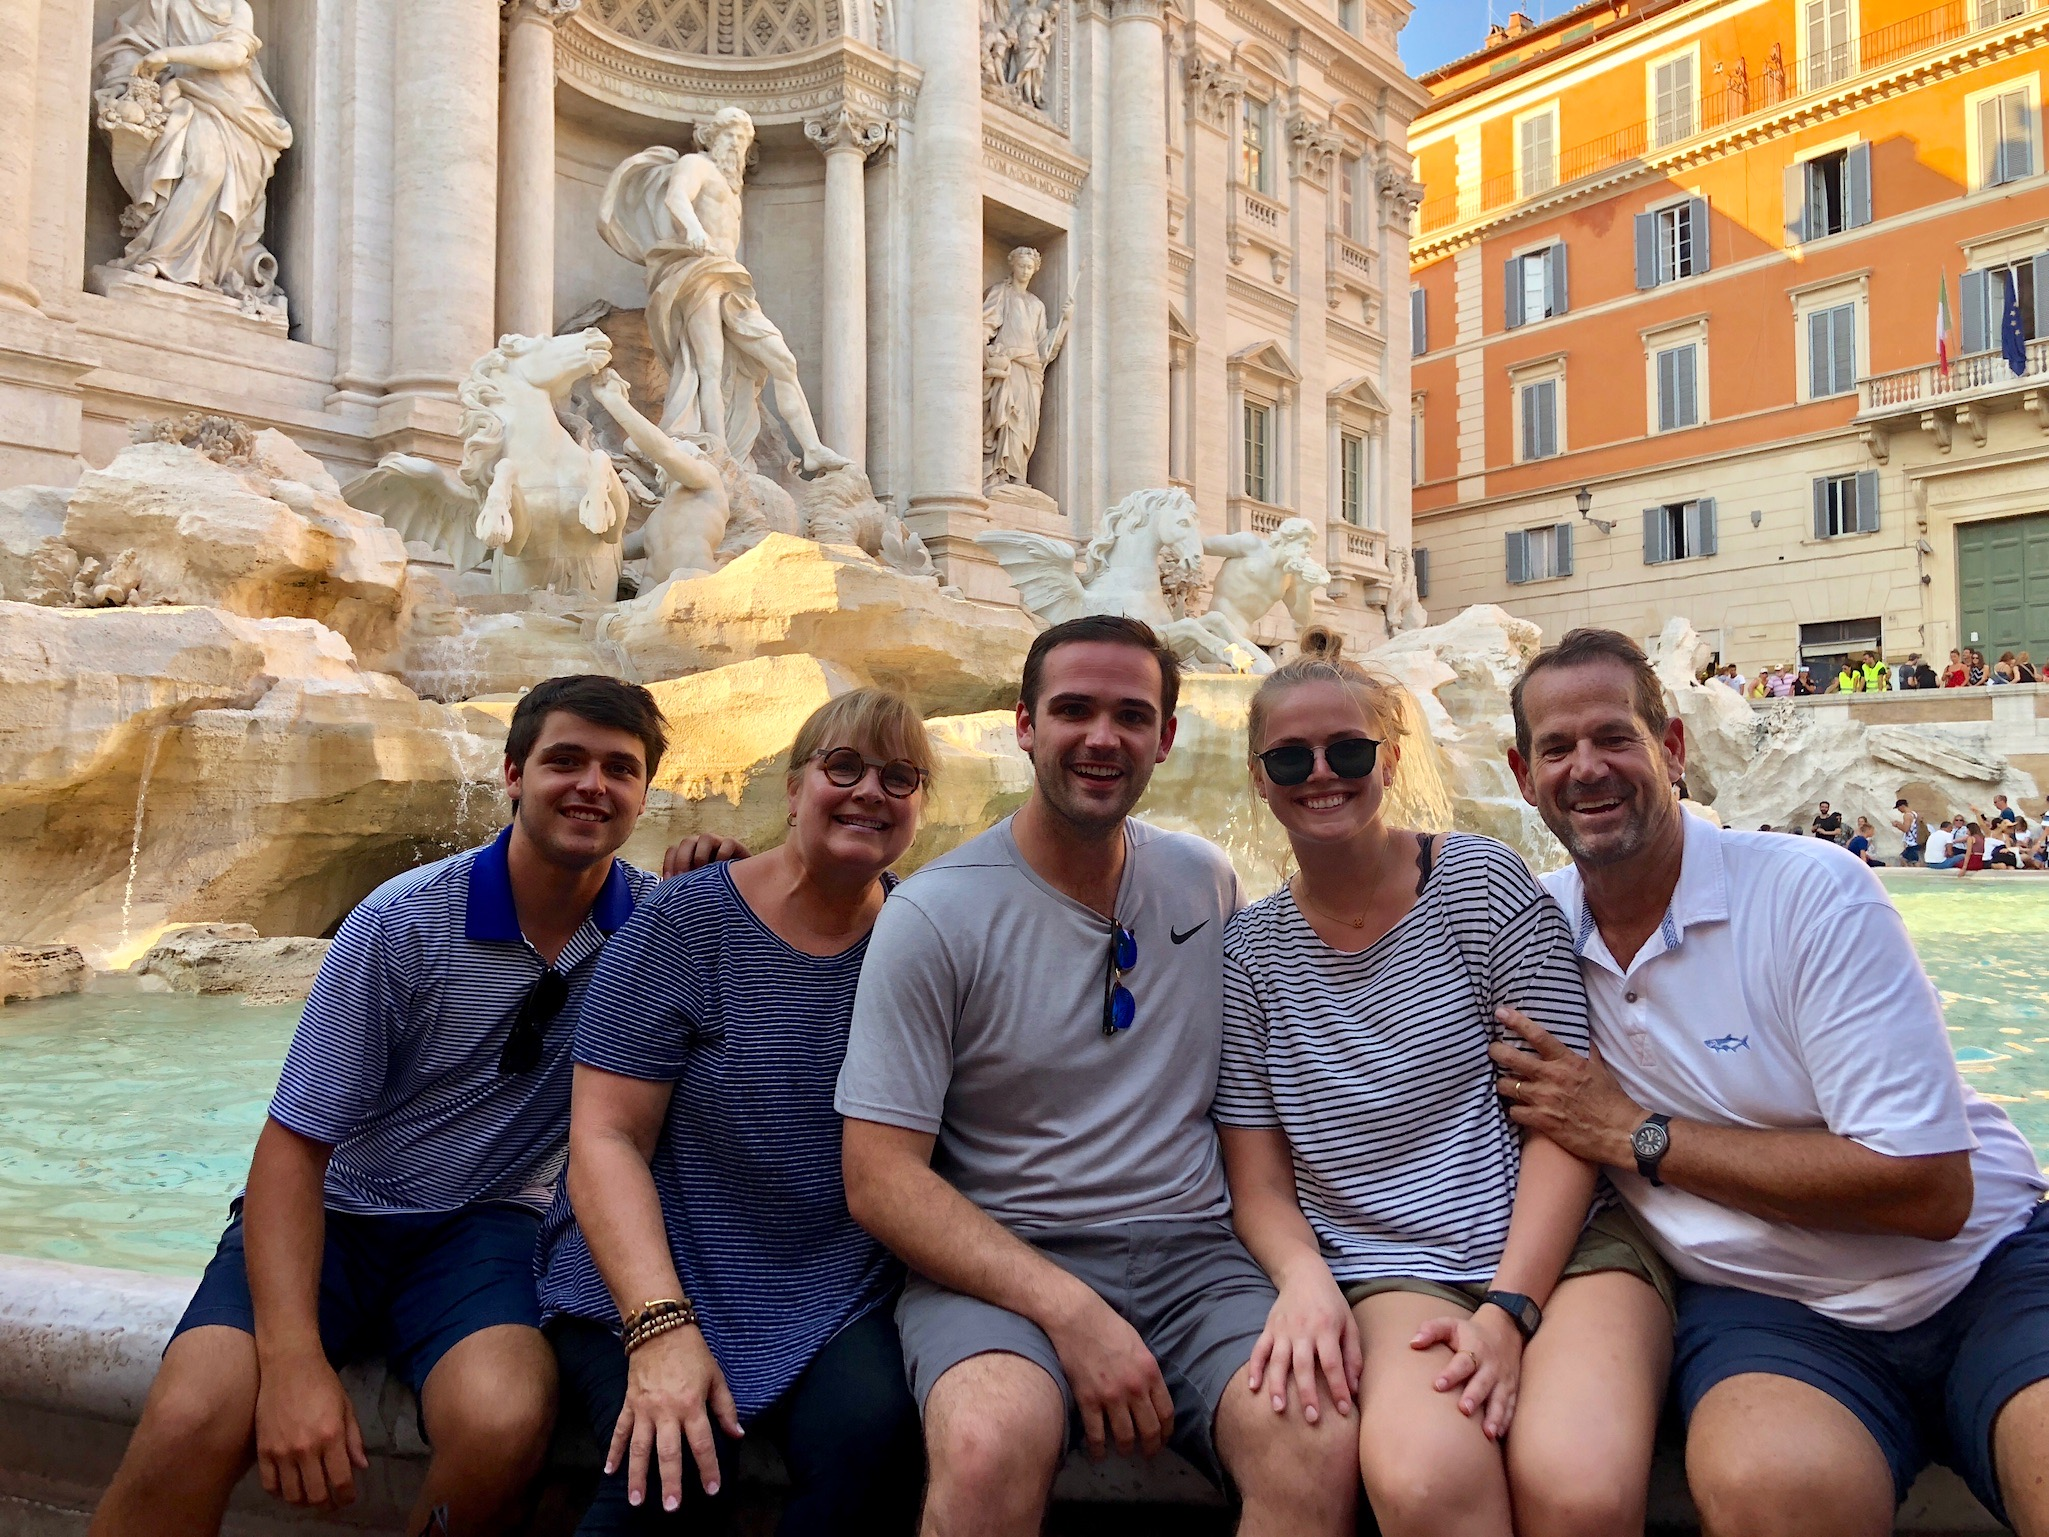 We ended up our stay in this beautiful city at the Trevi Fountain in the Trevi district and just chilled there for a while. So refreshing to feel the mist of the water while looking at this incredible sculpture. Throw three coins in and make a wish!